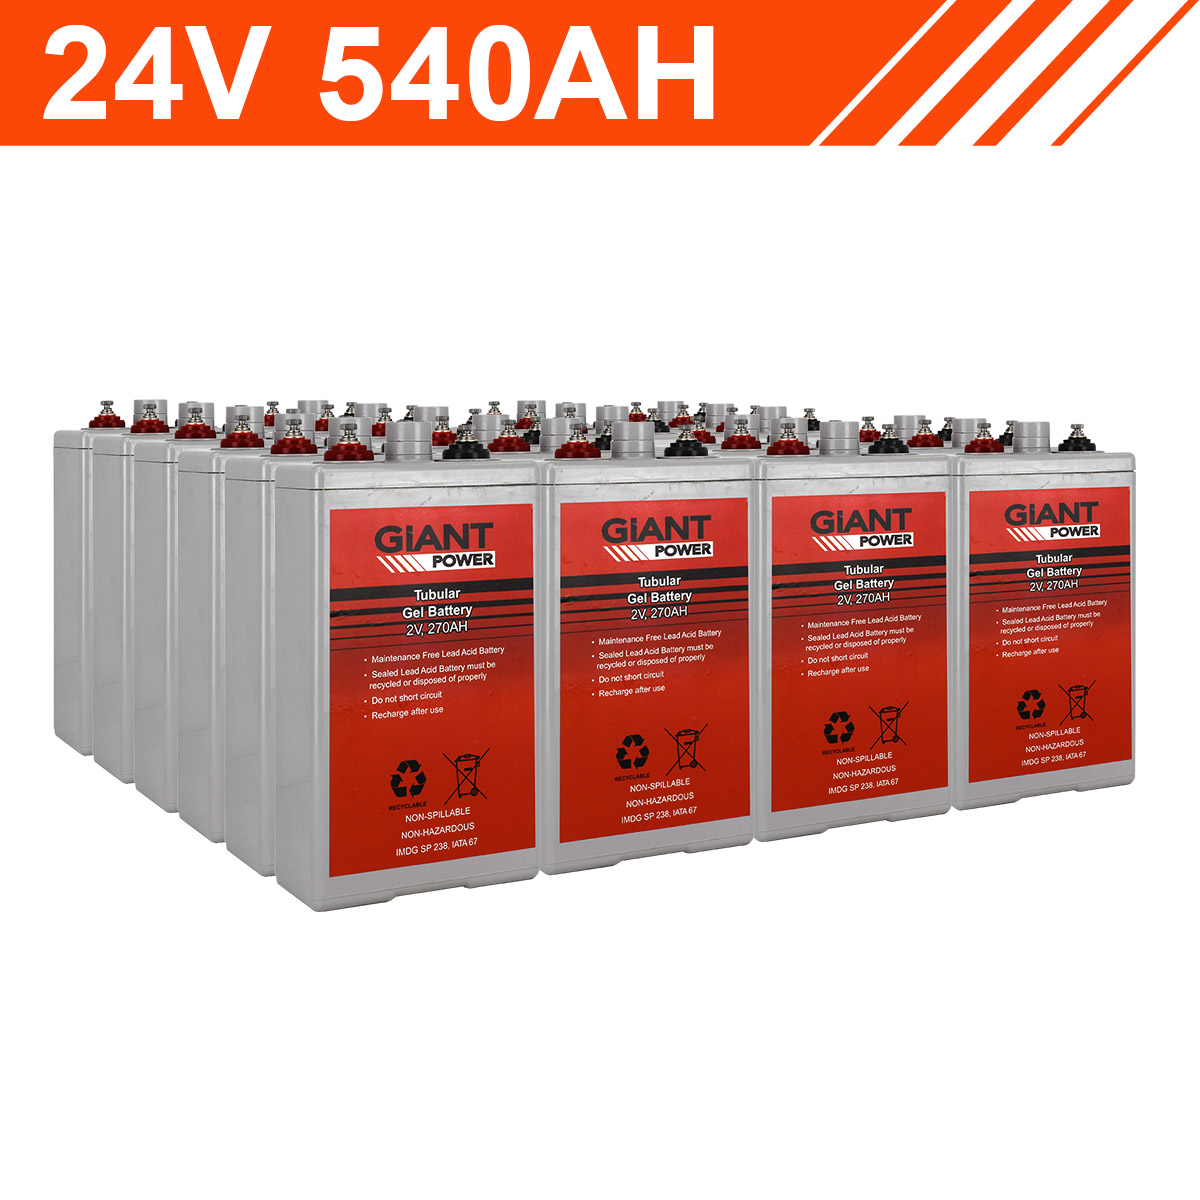 24v 540ah Tubular Gel Solar Battery Bank